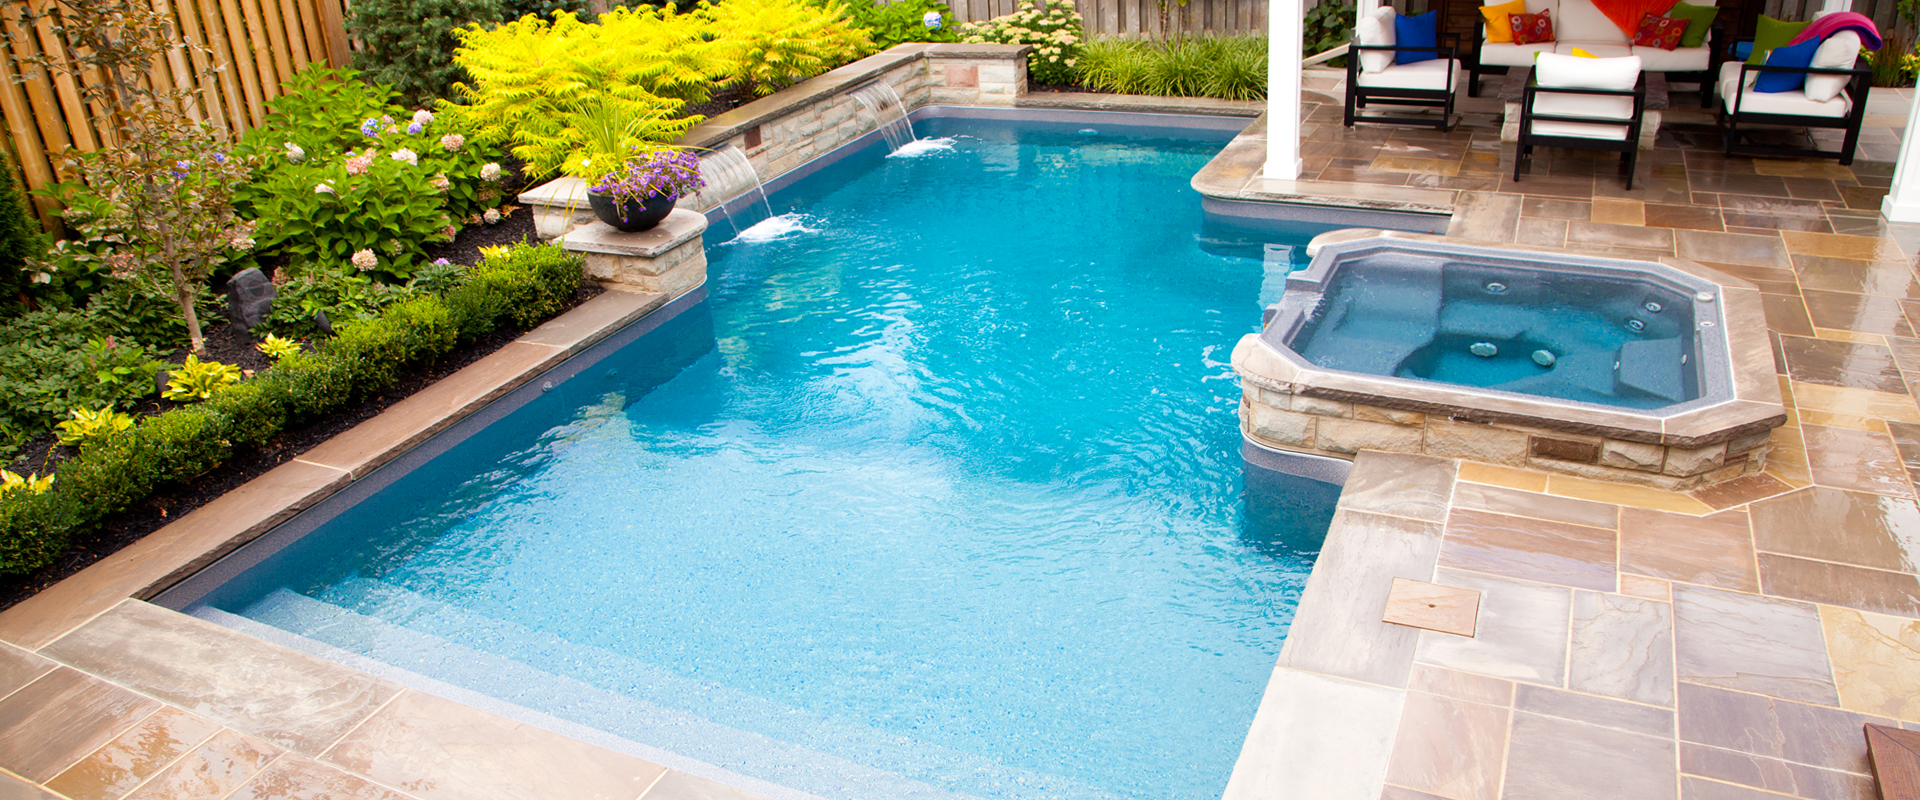 Inground Onground And Above Ground Pools Boldt Pools And Spa